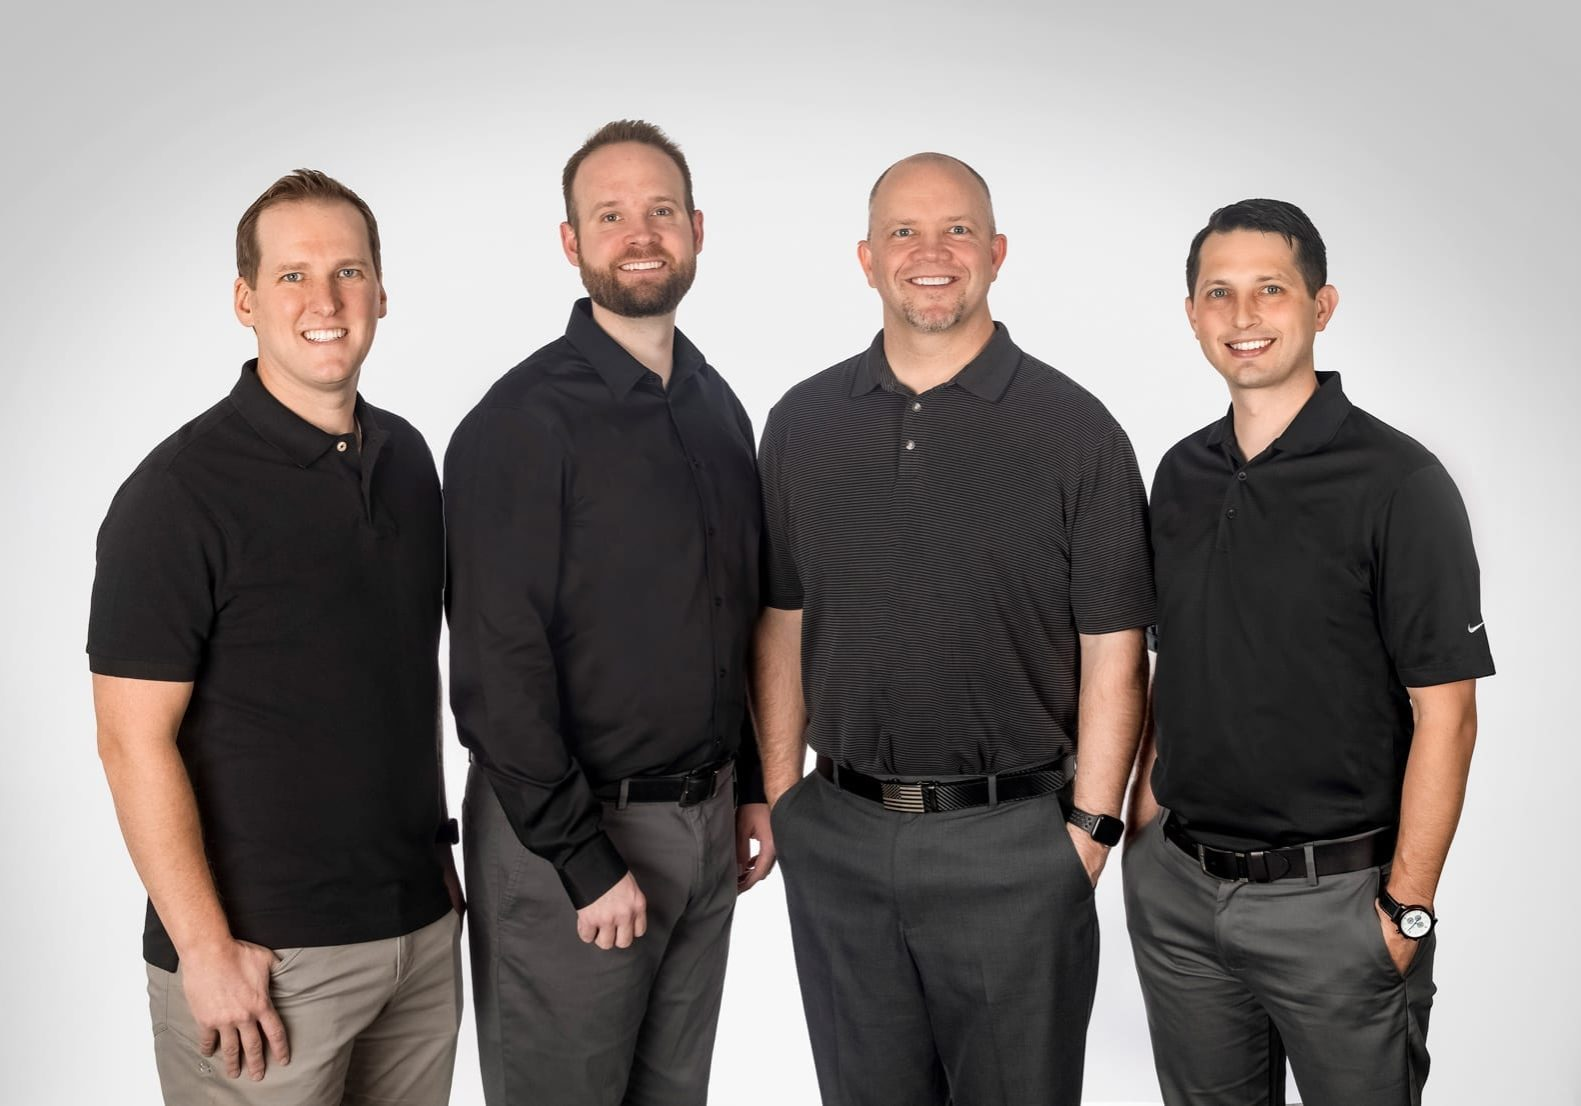 The dentists at West Richland Family Dental. From left to right, Michael Maxfield, Jarom Smith, Jason Madsen, and Wes Karlson